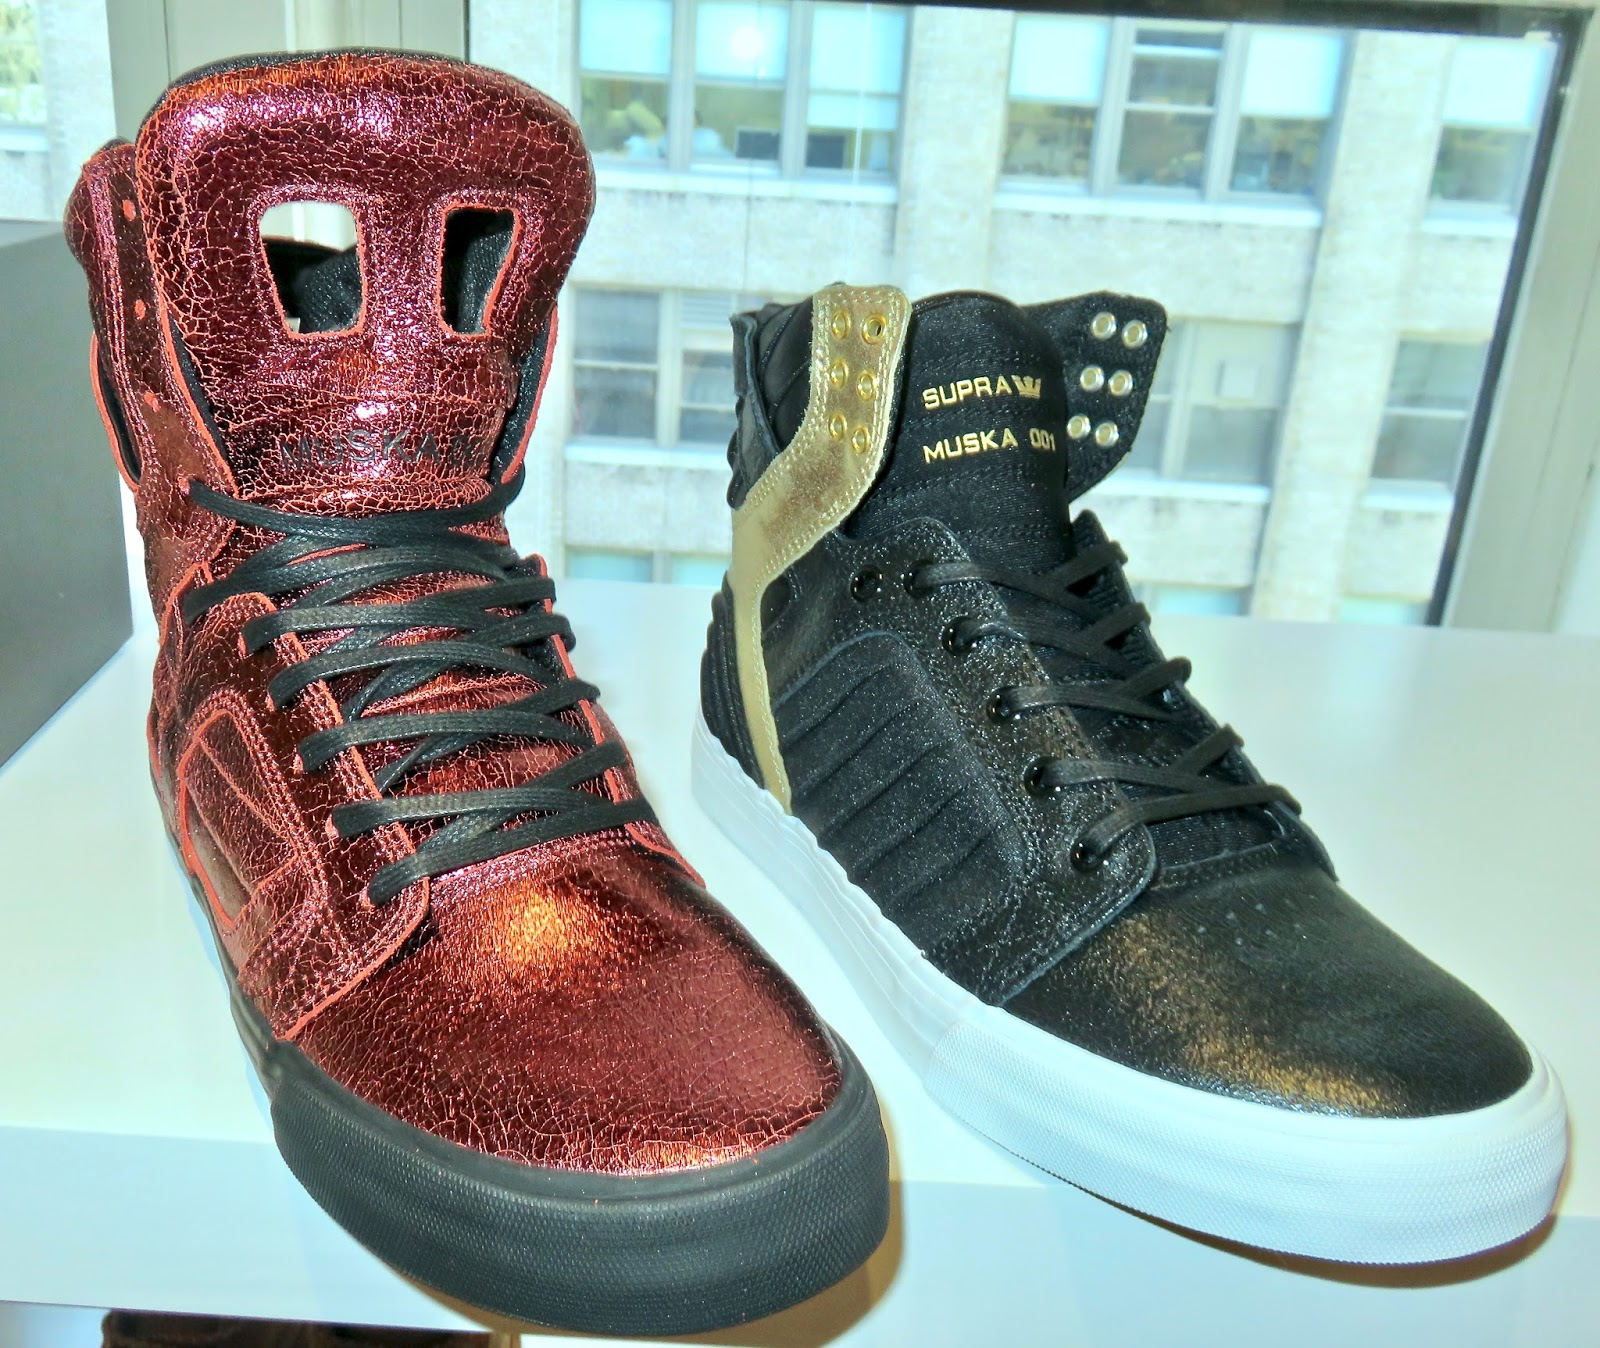 ... heel + collar-and black foiled leather+black lycra upper-paired with  white foxing...on left Skytop II-streamline look of the original in brick  red ... 536cac93afb